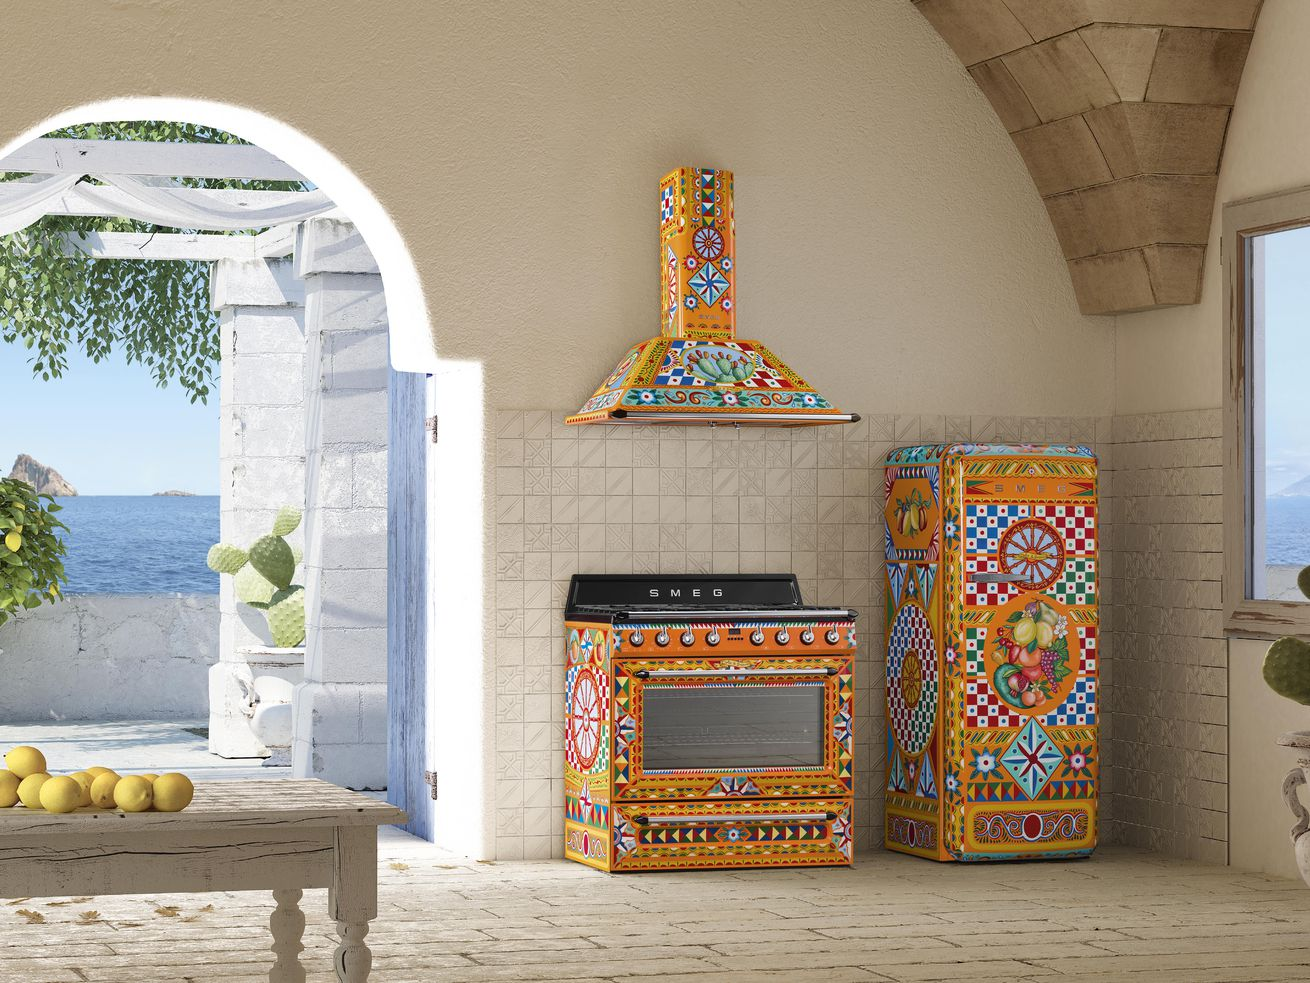 Dolce & Gabbana?s vibrant appliance line for Smeg expands again